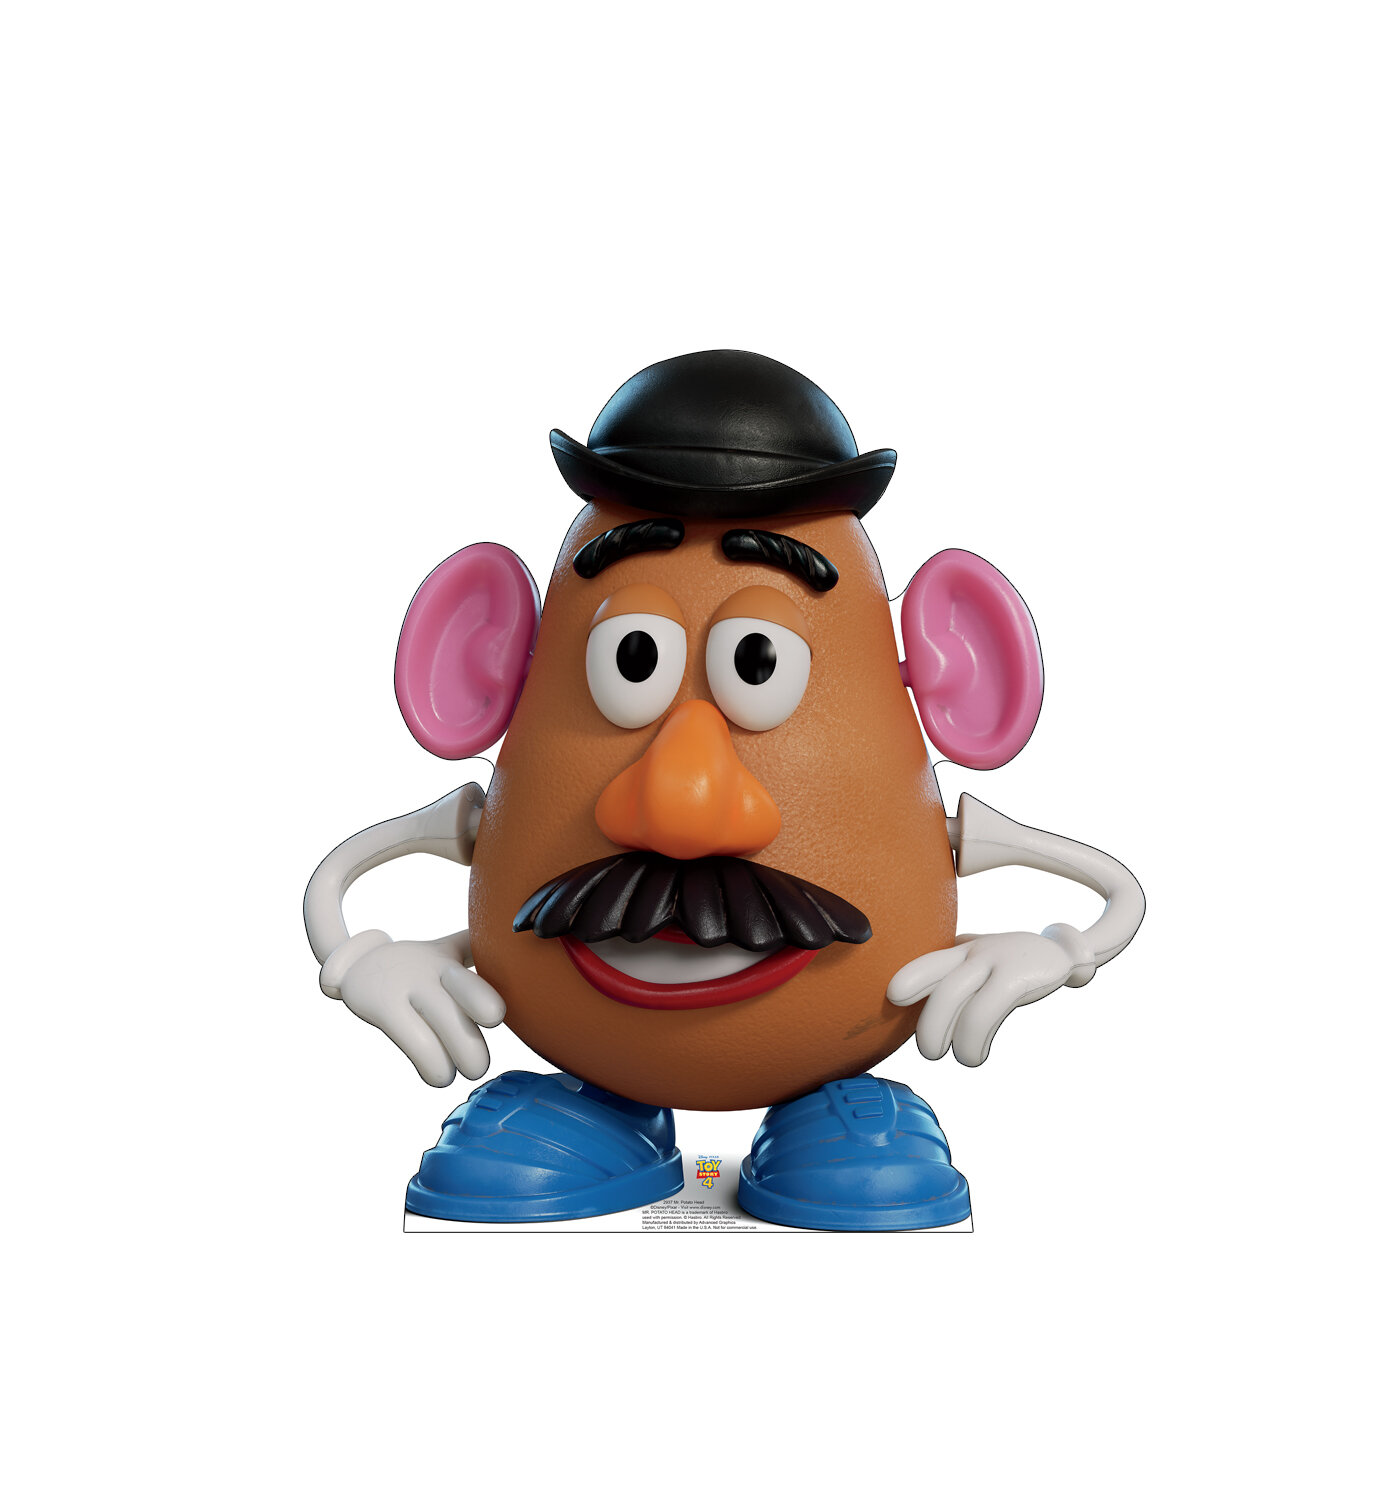 Mr Potato Head Disneypixar Toy Story 4 Cardboard Standup